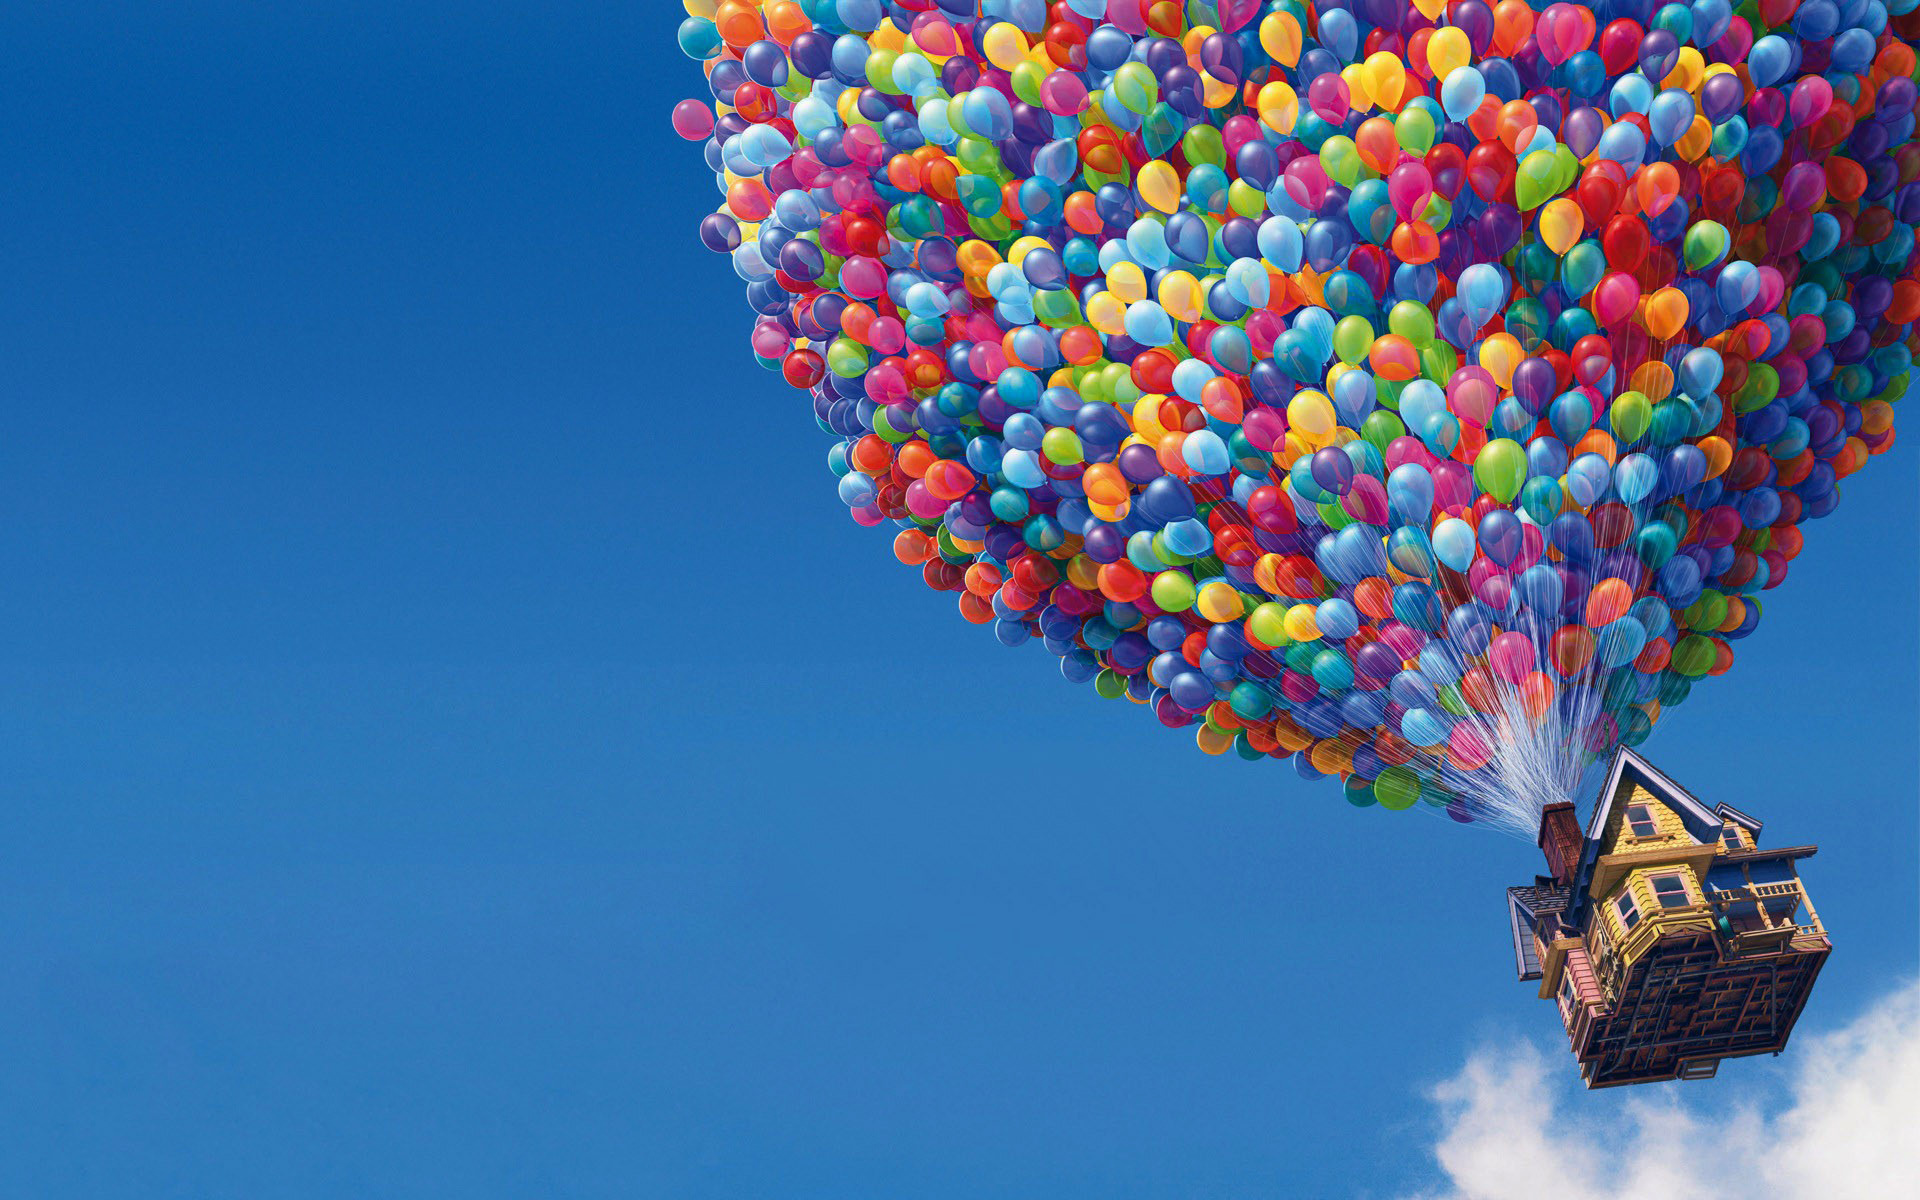 Desktop wallpaper - Up Movie Balloons House Wallpapers Hd Wallpapers